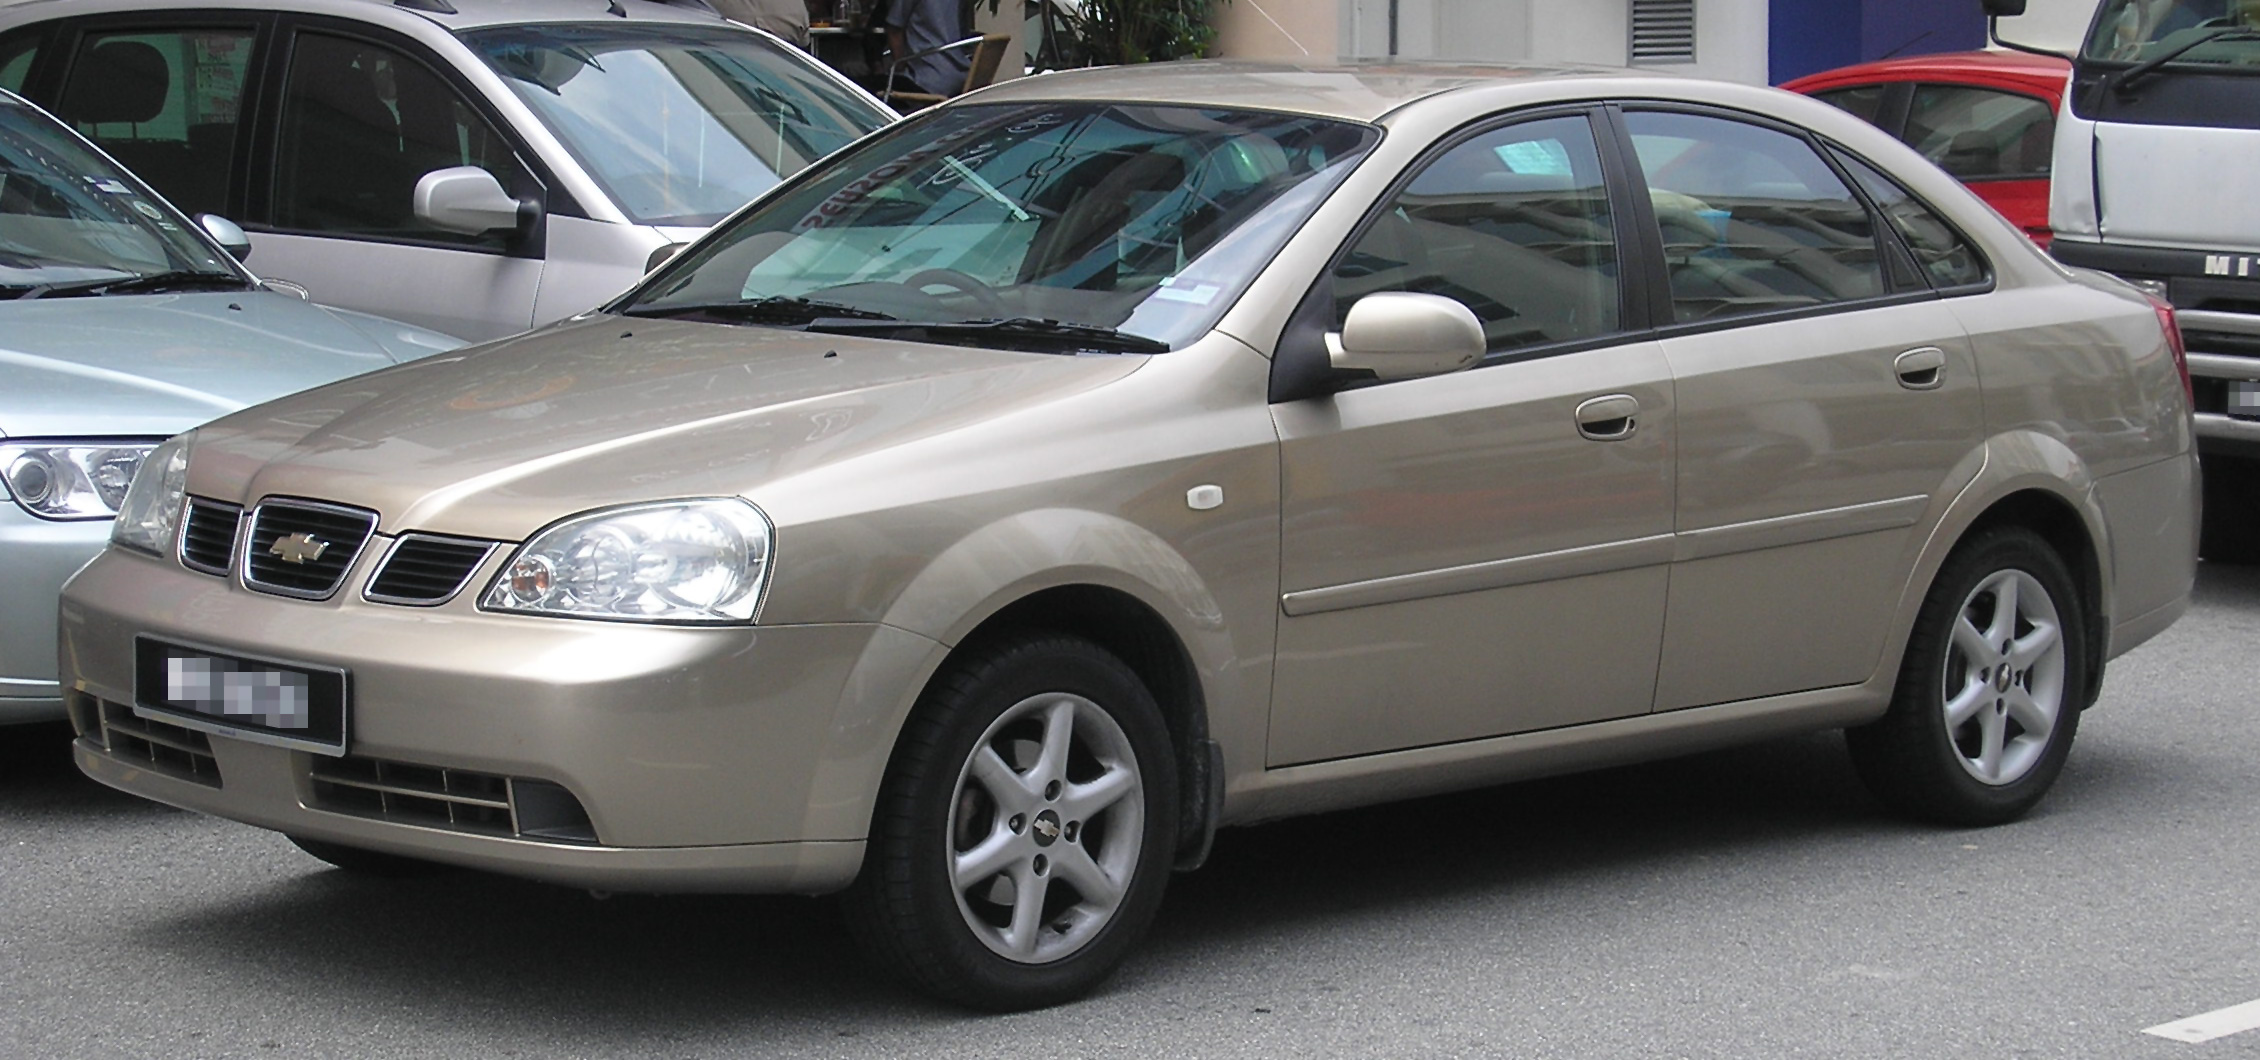 http://upload.wikimedia.org/wikipedia/commons/6/65/Chevrolet_Optra_(first_generation)_(front),_Serdang.jpg